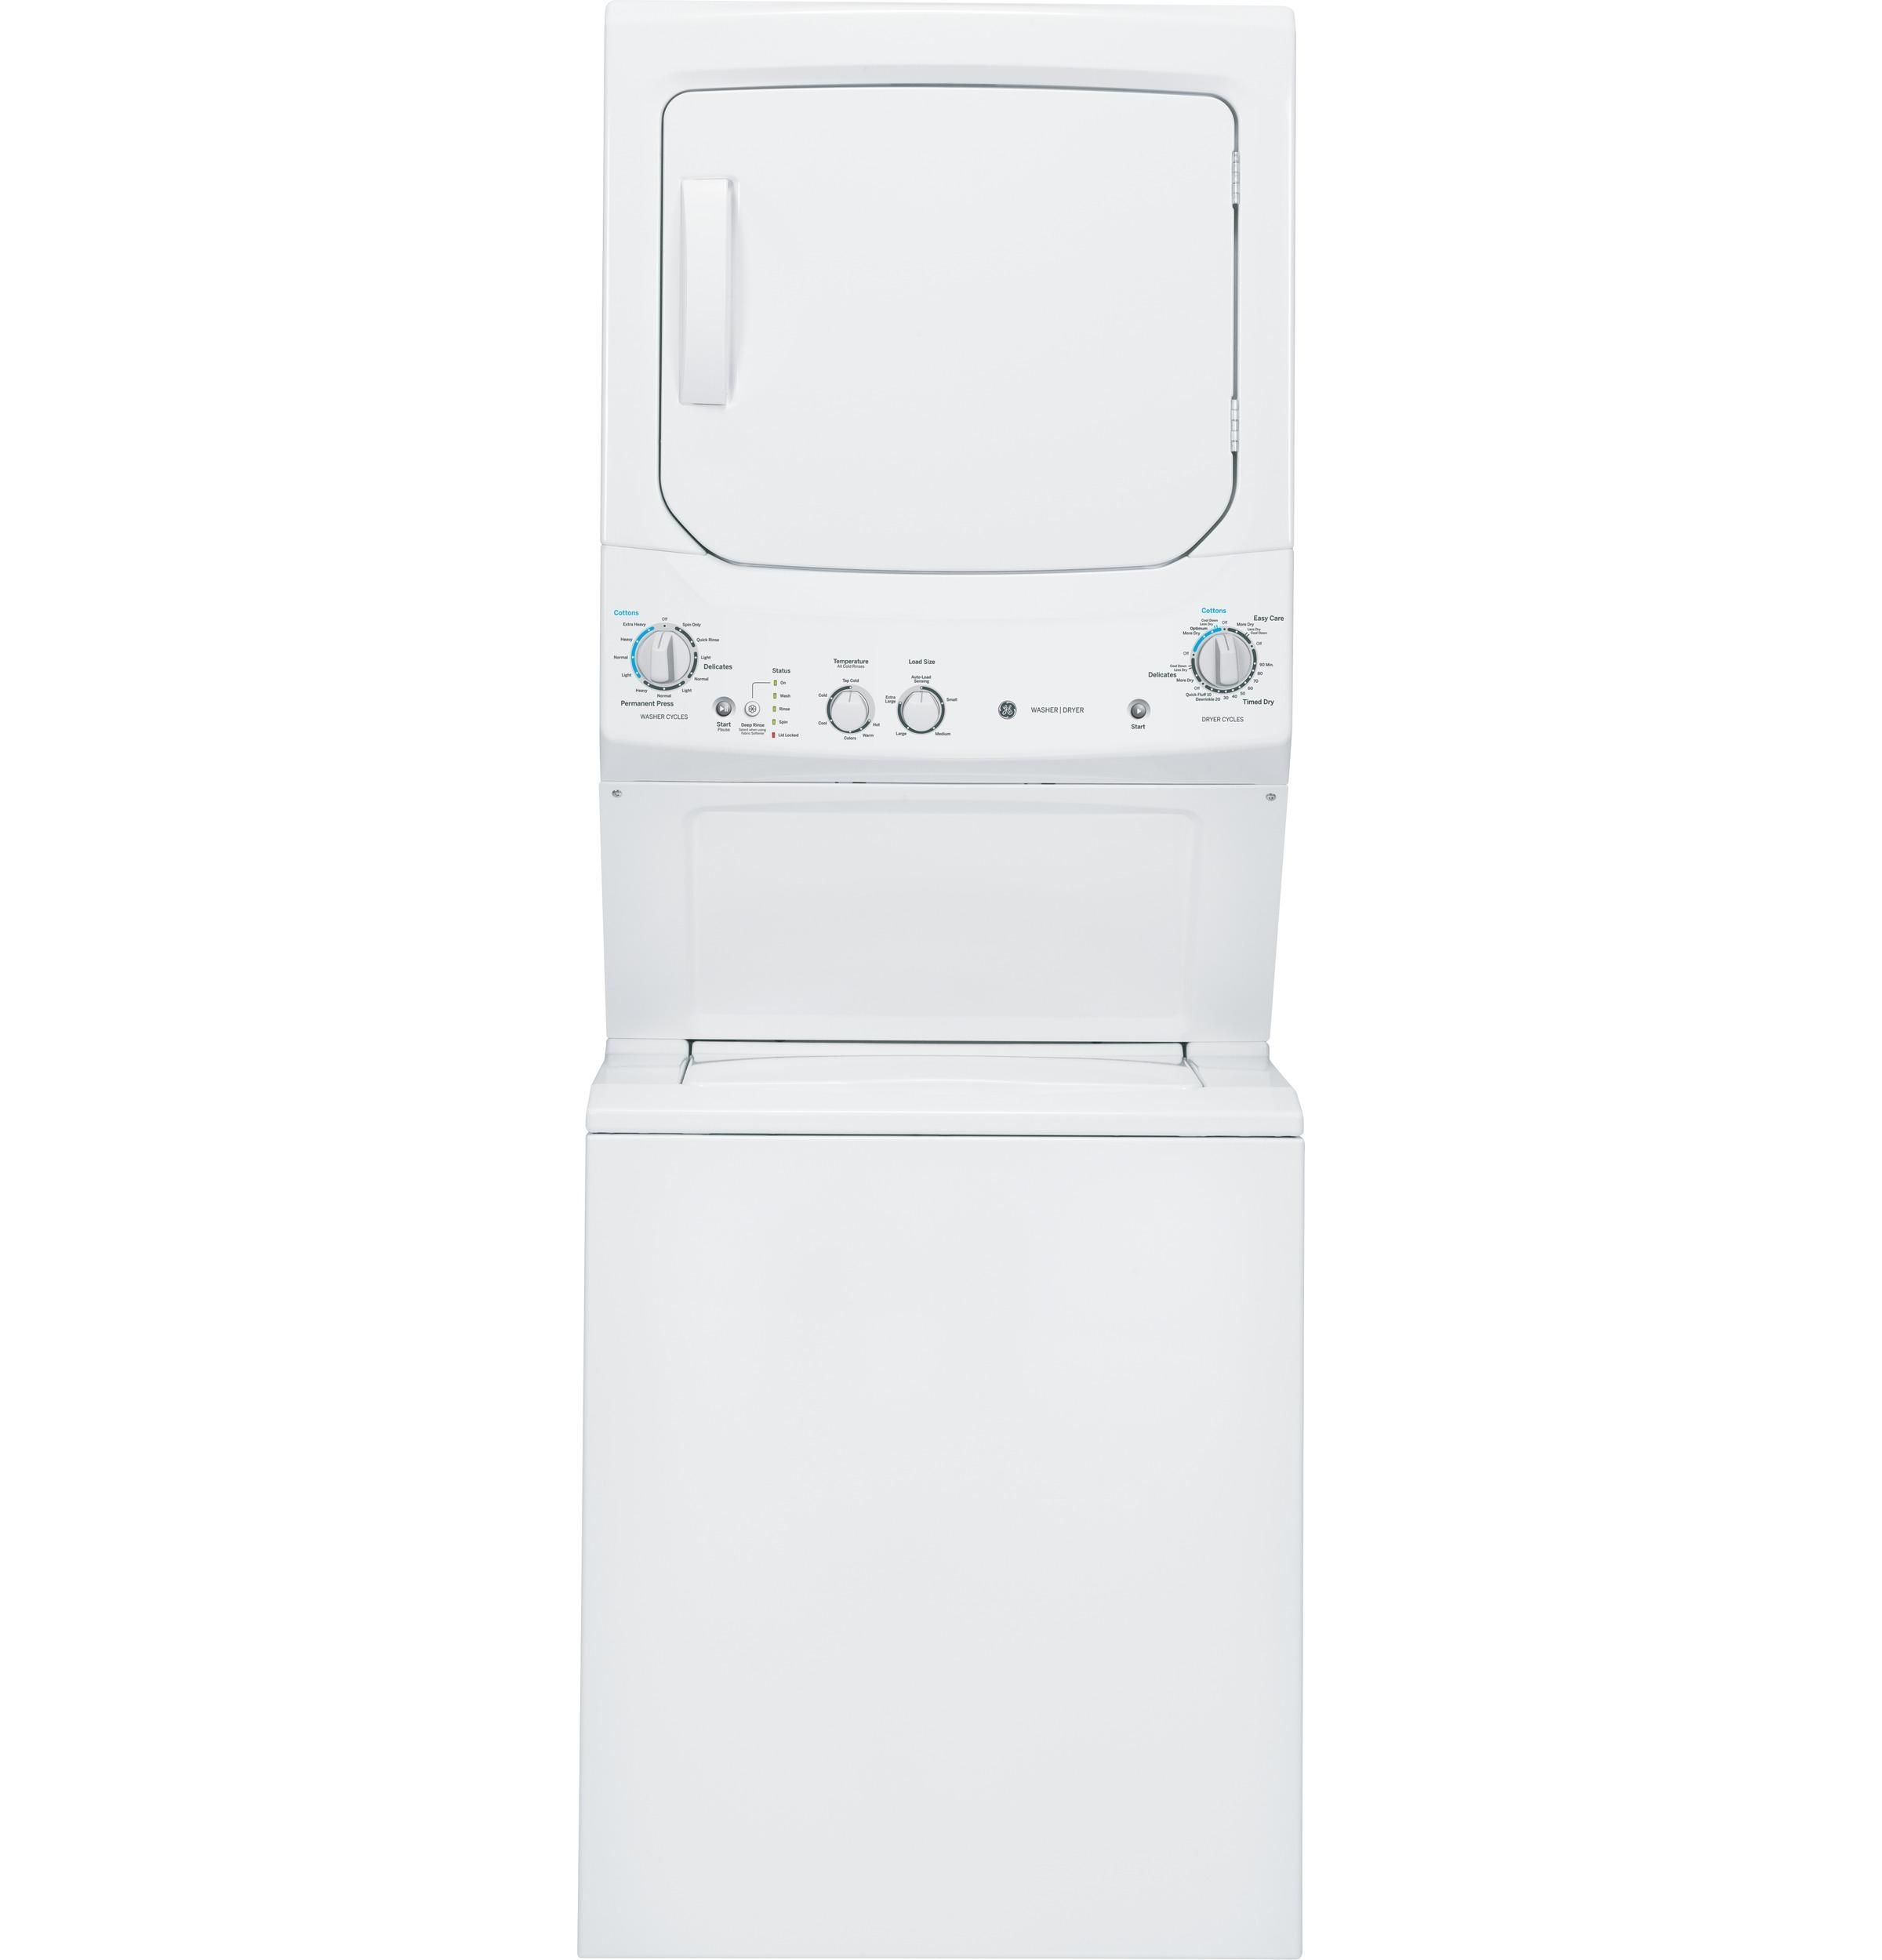 GE Unitized Spacemaker(R) 3.2 DOE cu. ft. Washer and 5.9 cu. ft. Gas Dryer